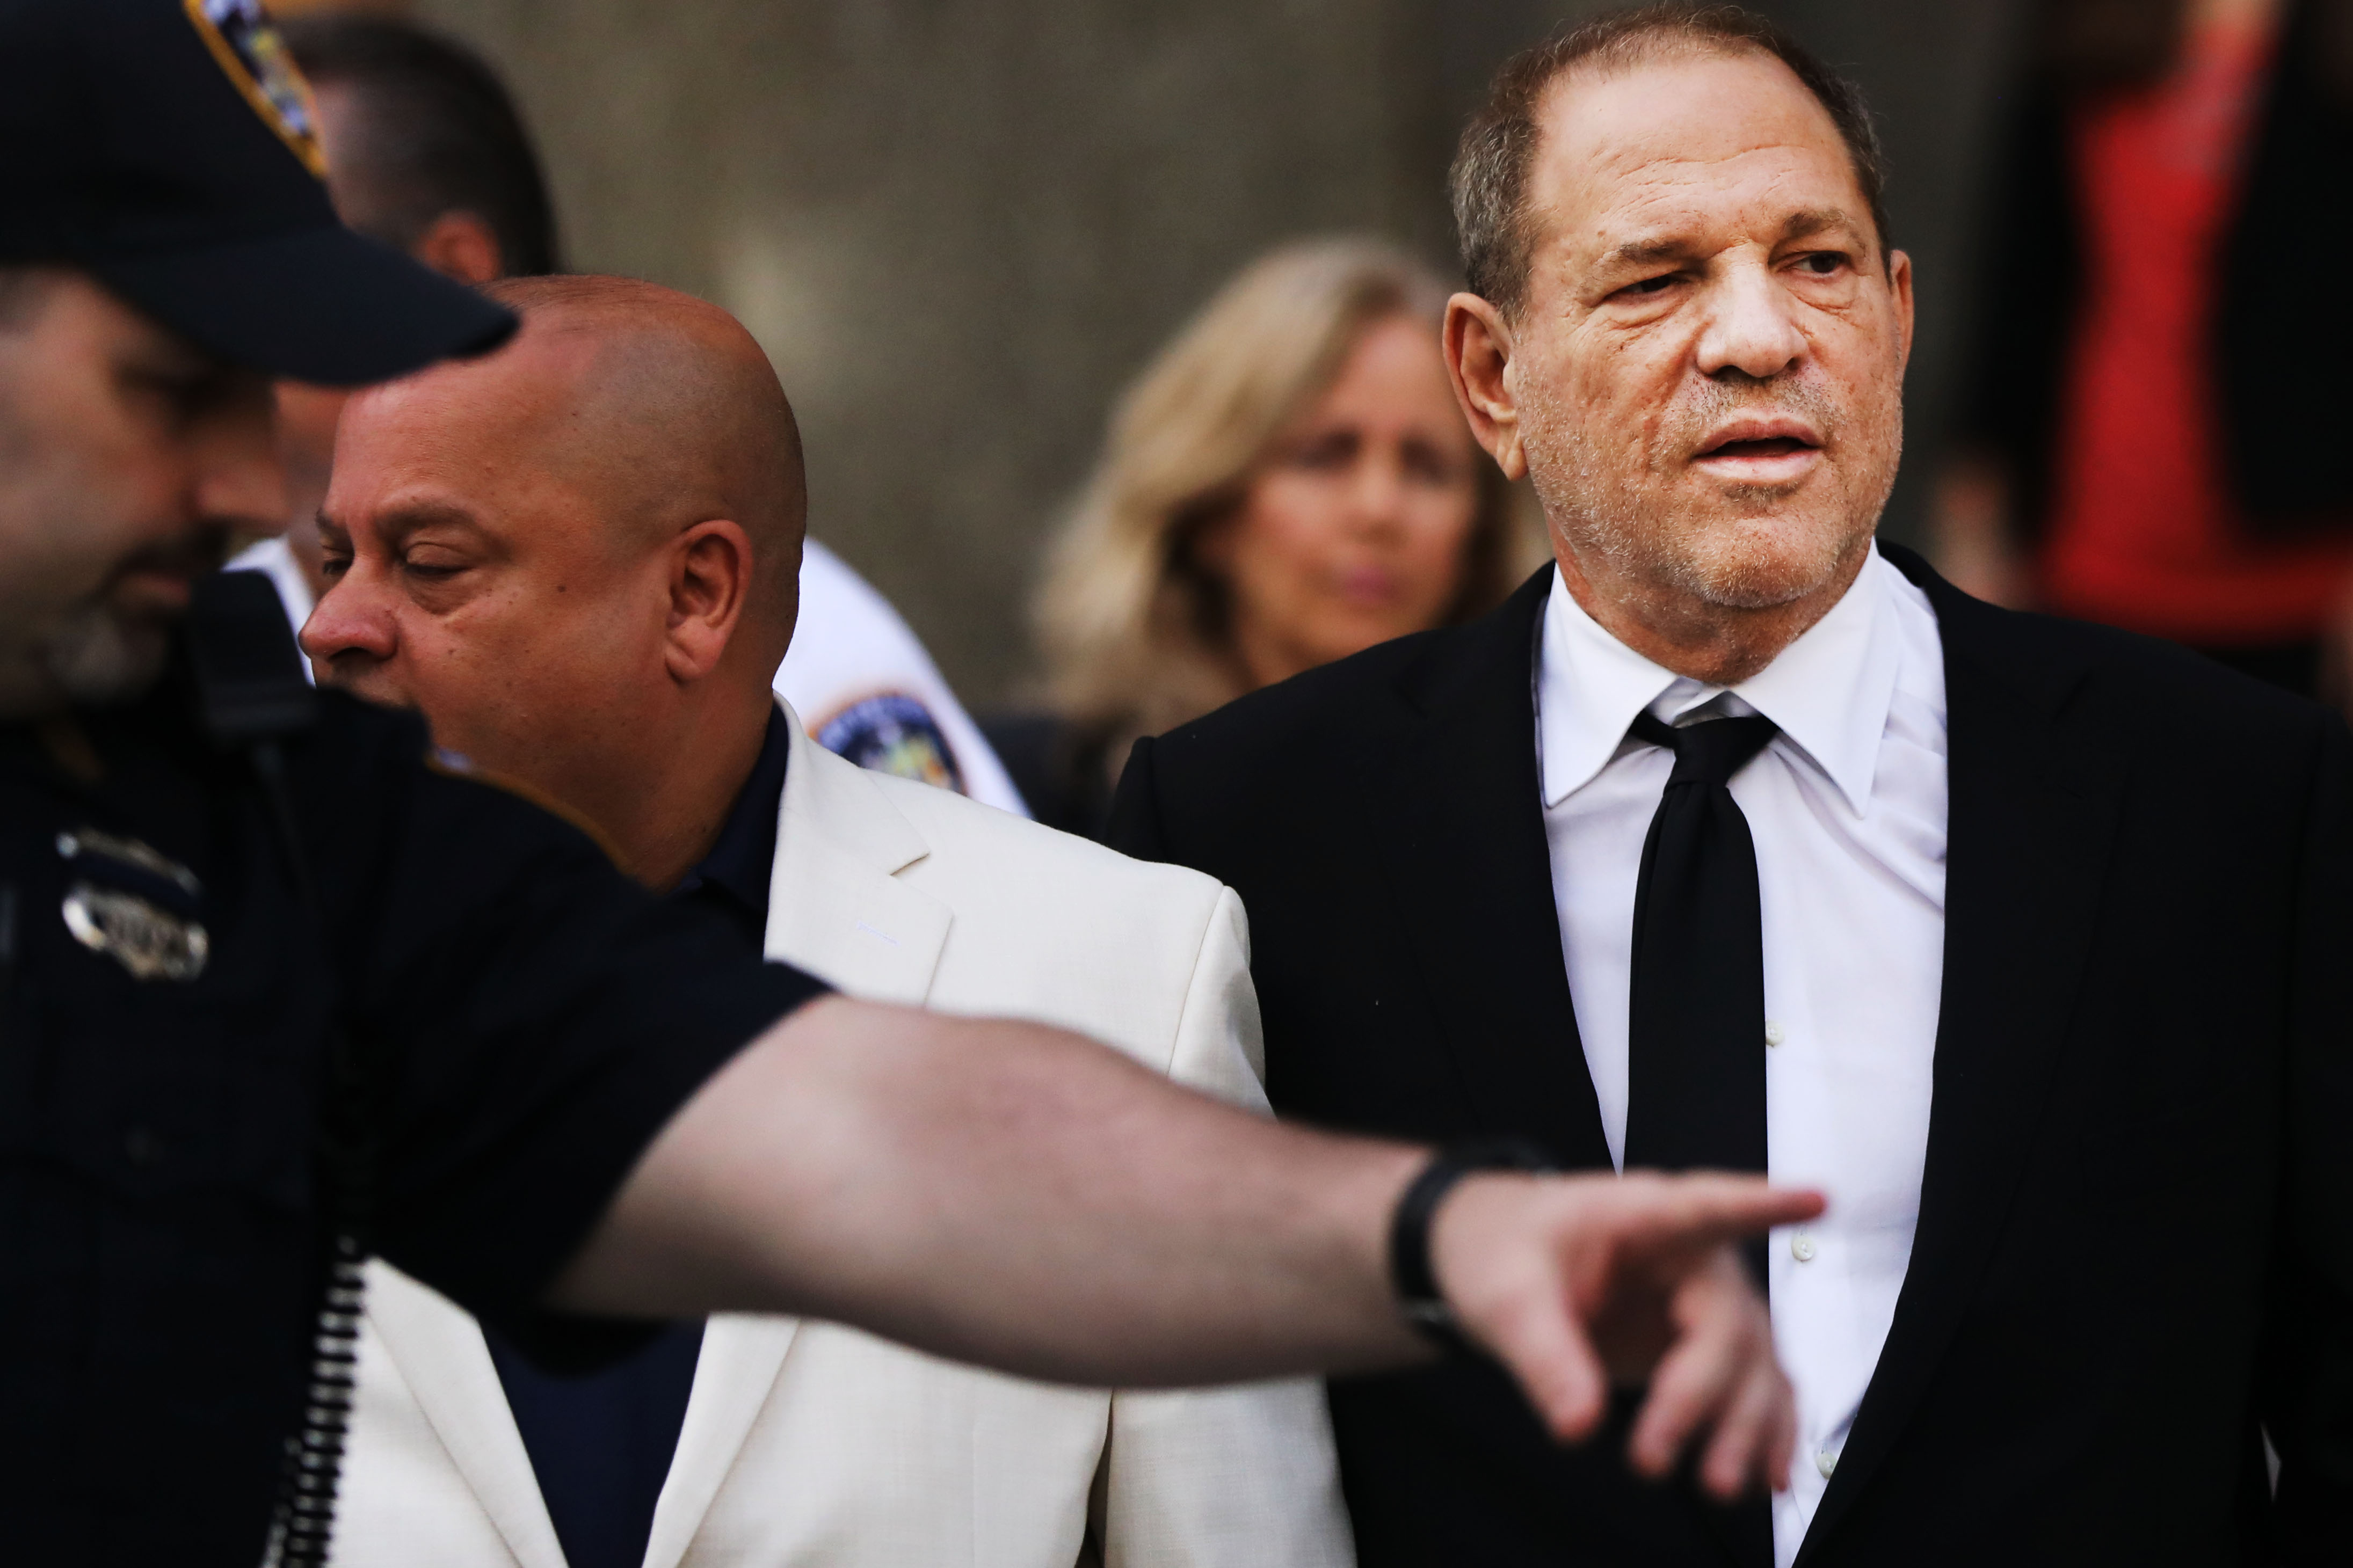 An actor confronted Harvey Weinstein at a comedy show. Guess who got thrown out?